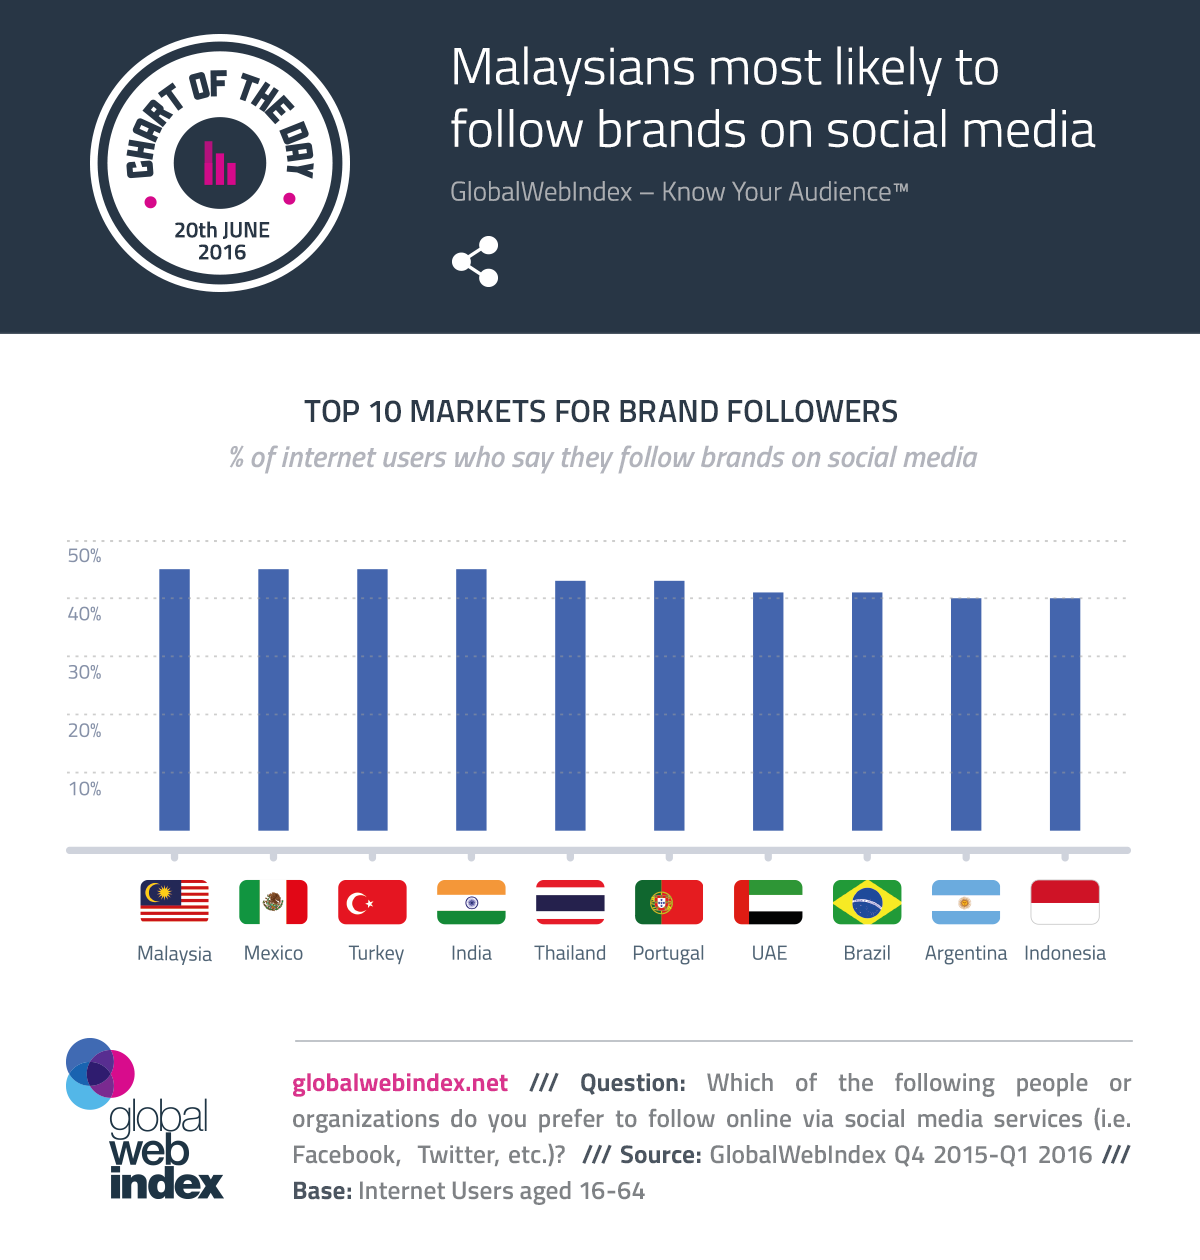 Malaysians most likely to follow brands on social media